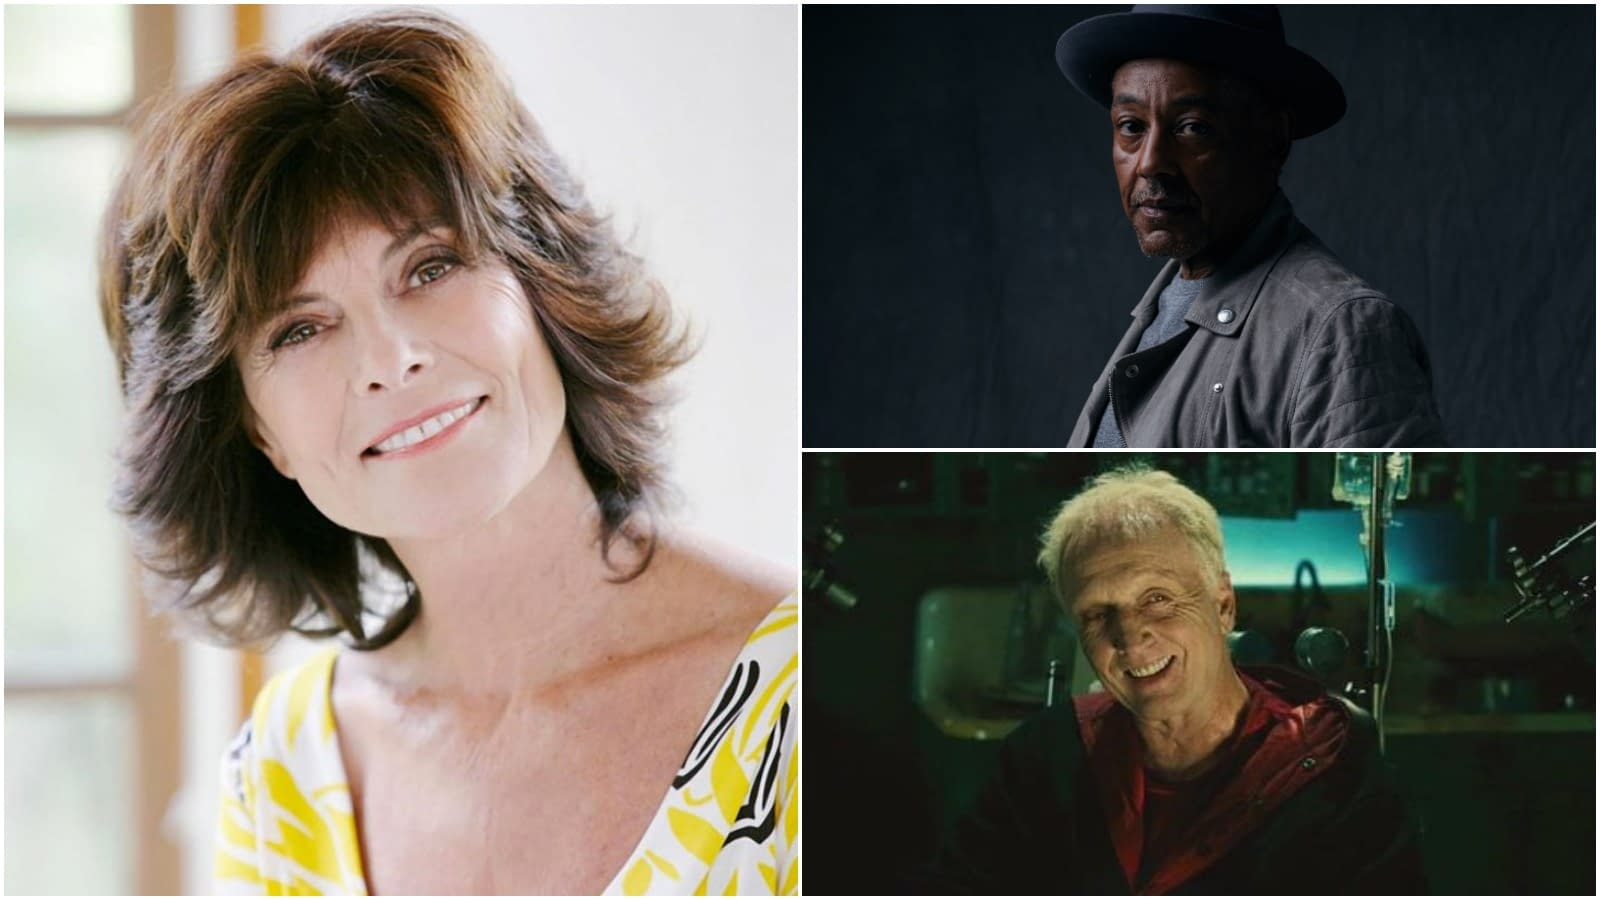 'Creepshow': Adrienne Barbeau, Giancarlo Esposito, Tobin Bell Join Shudder Horror Anthology Series